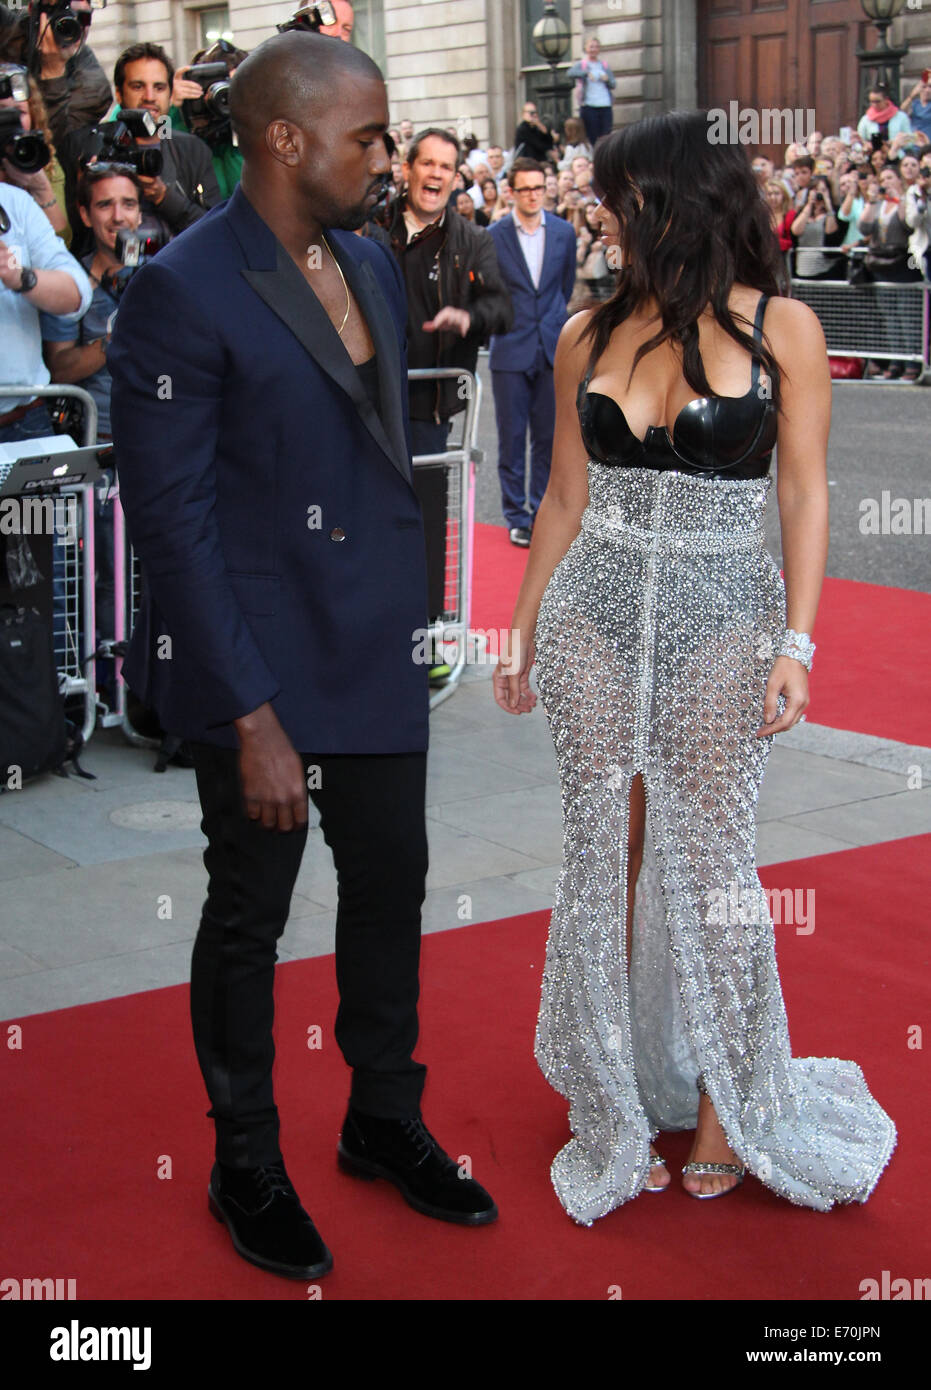 London, UK, 2nd September 2014: Kim Kardashian and Kanye West attend the GQ Men of the Year awards at The Royal - Stock Image